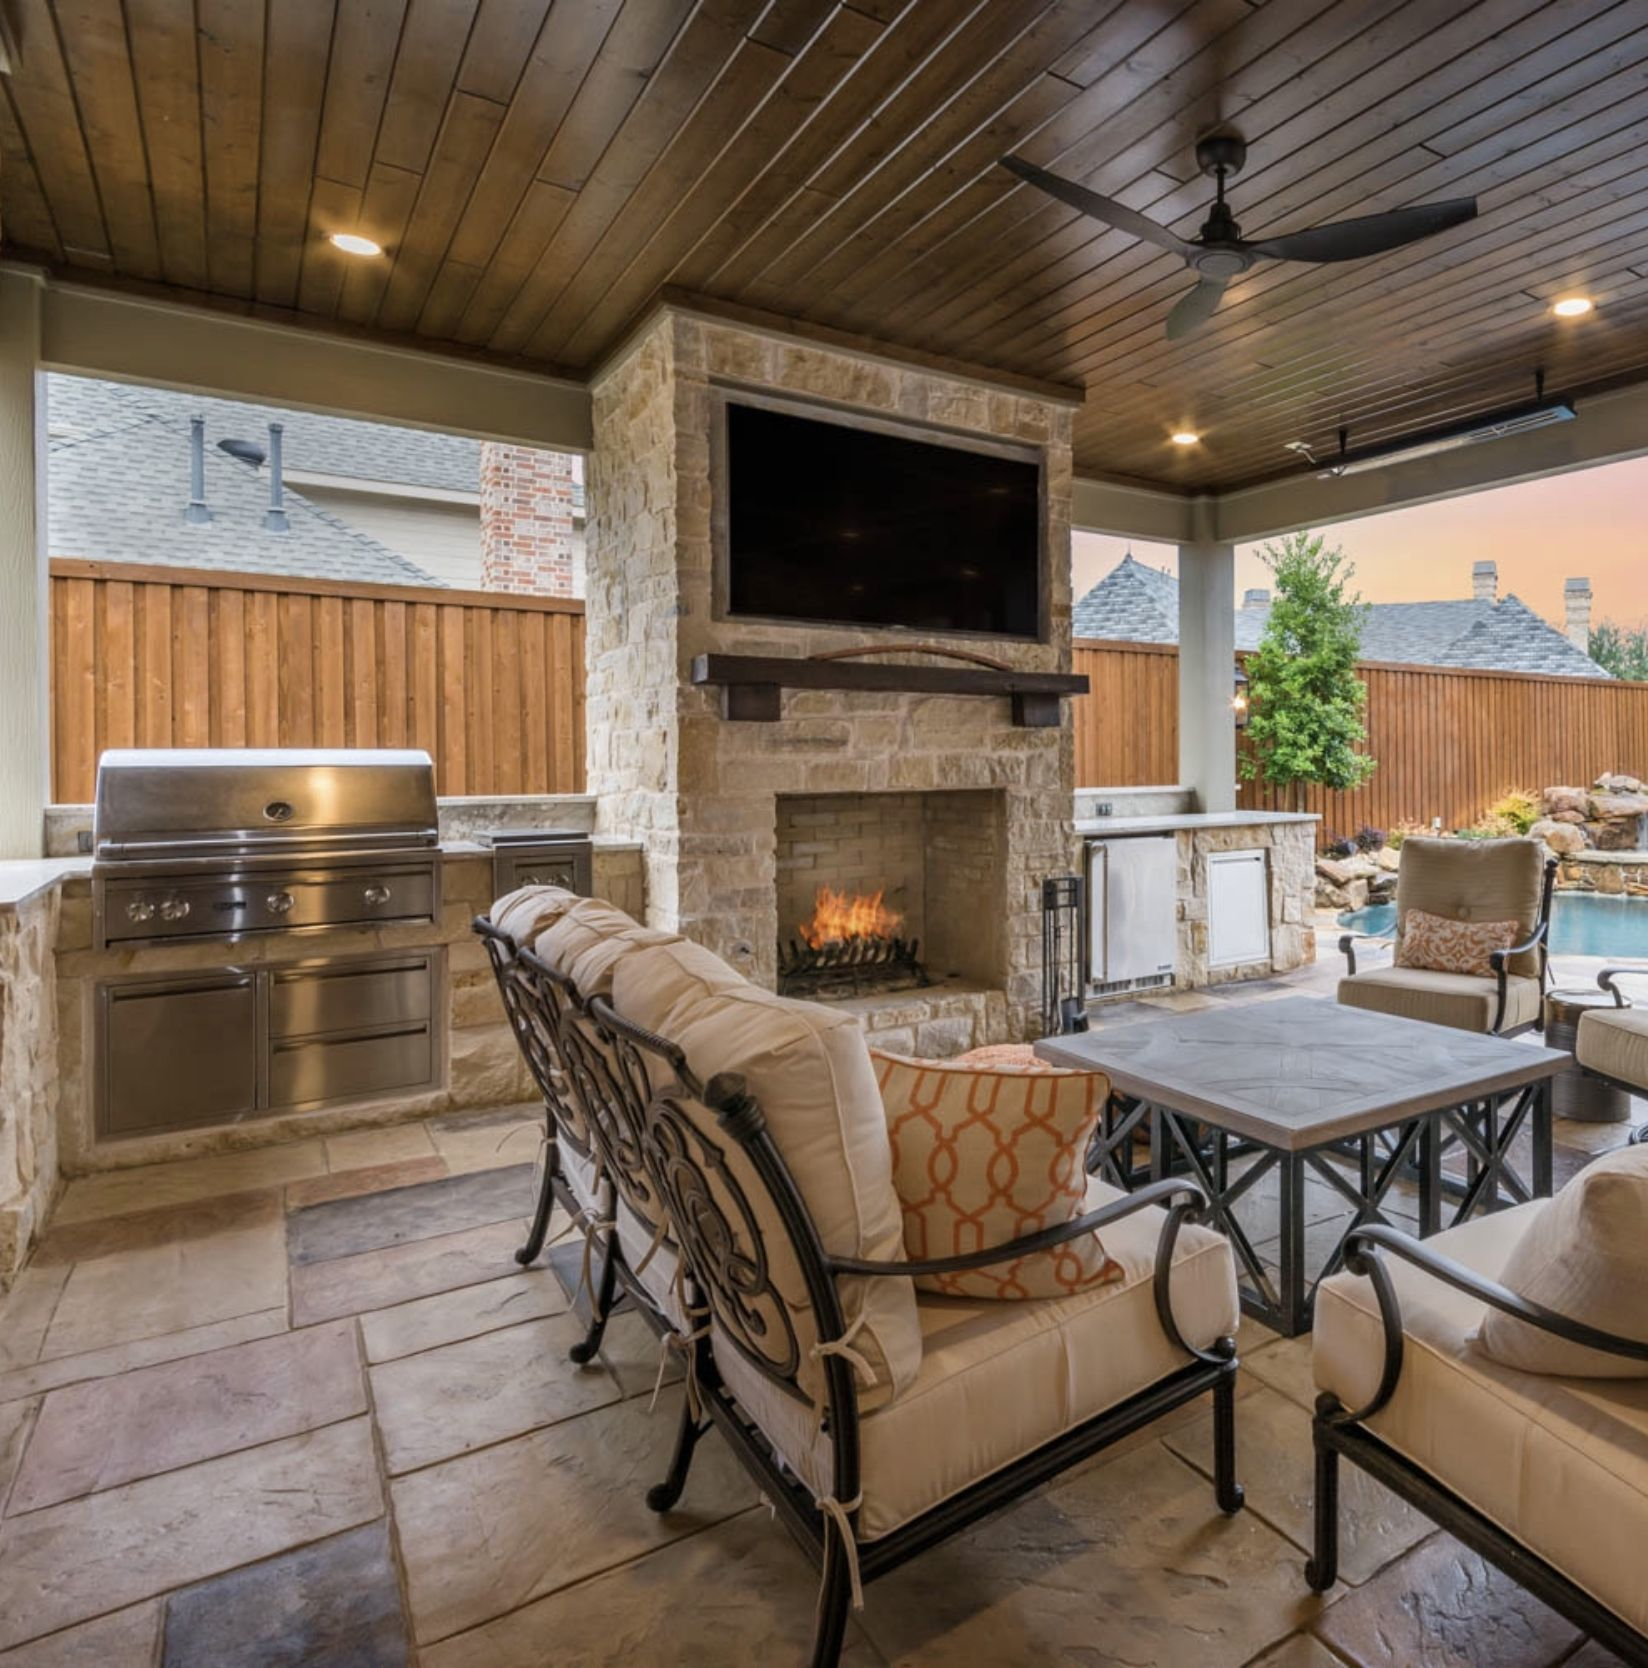 Outdoor Living At It S Finest Fireplace Kitchen Pool Patio Outdoorliving With Images Outdoor Fireplace Patio Patio Fireplace Outdoor Covered Patio